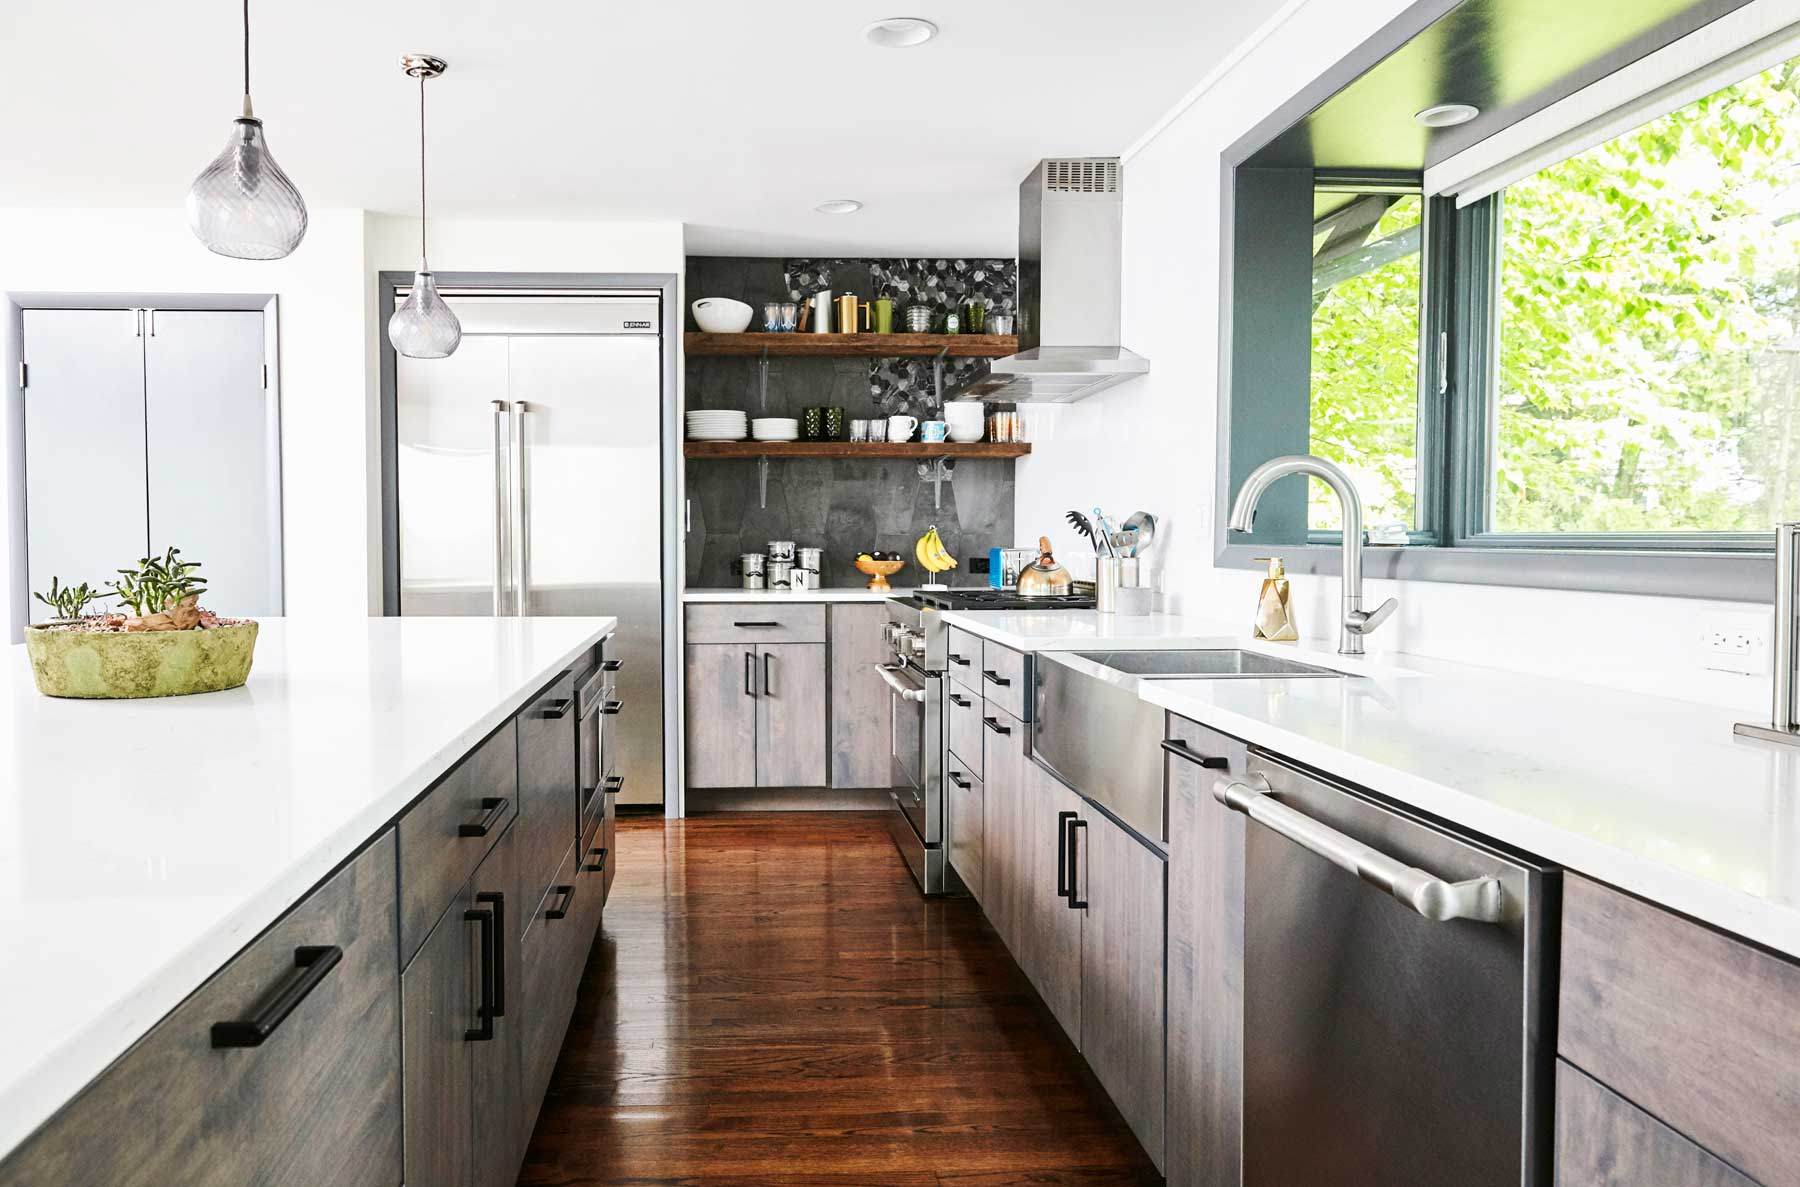 Renovated kitchen, kitchen remodel in Nureed Saeed's mid century modern home in South Orange, NJ